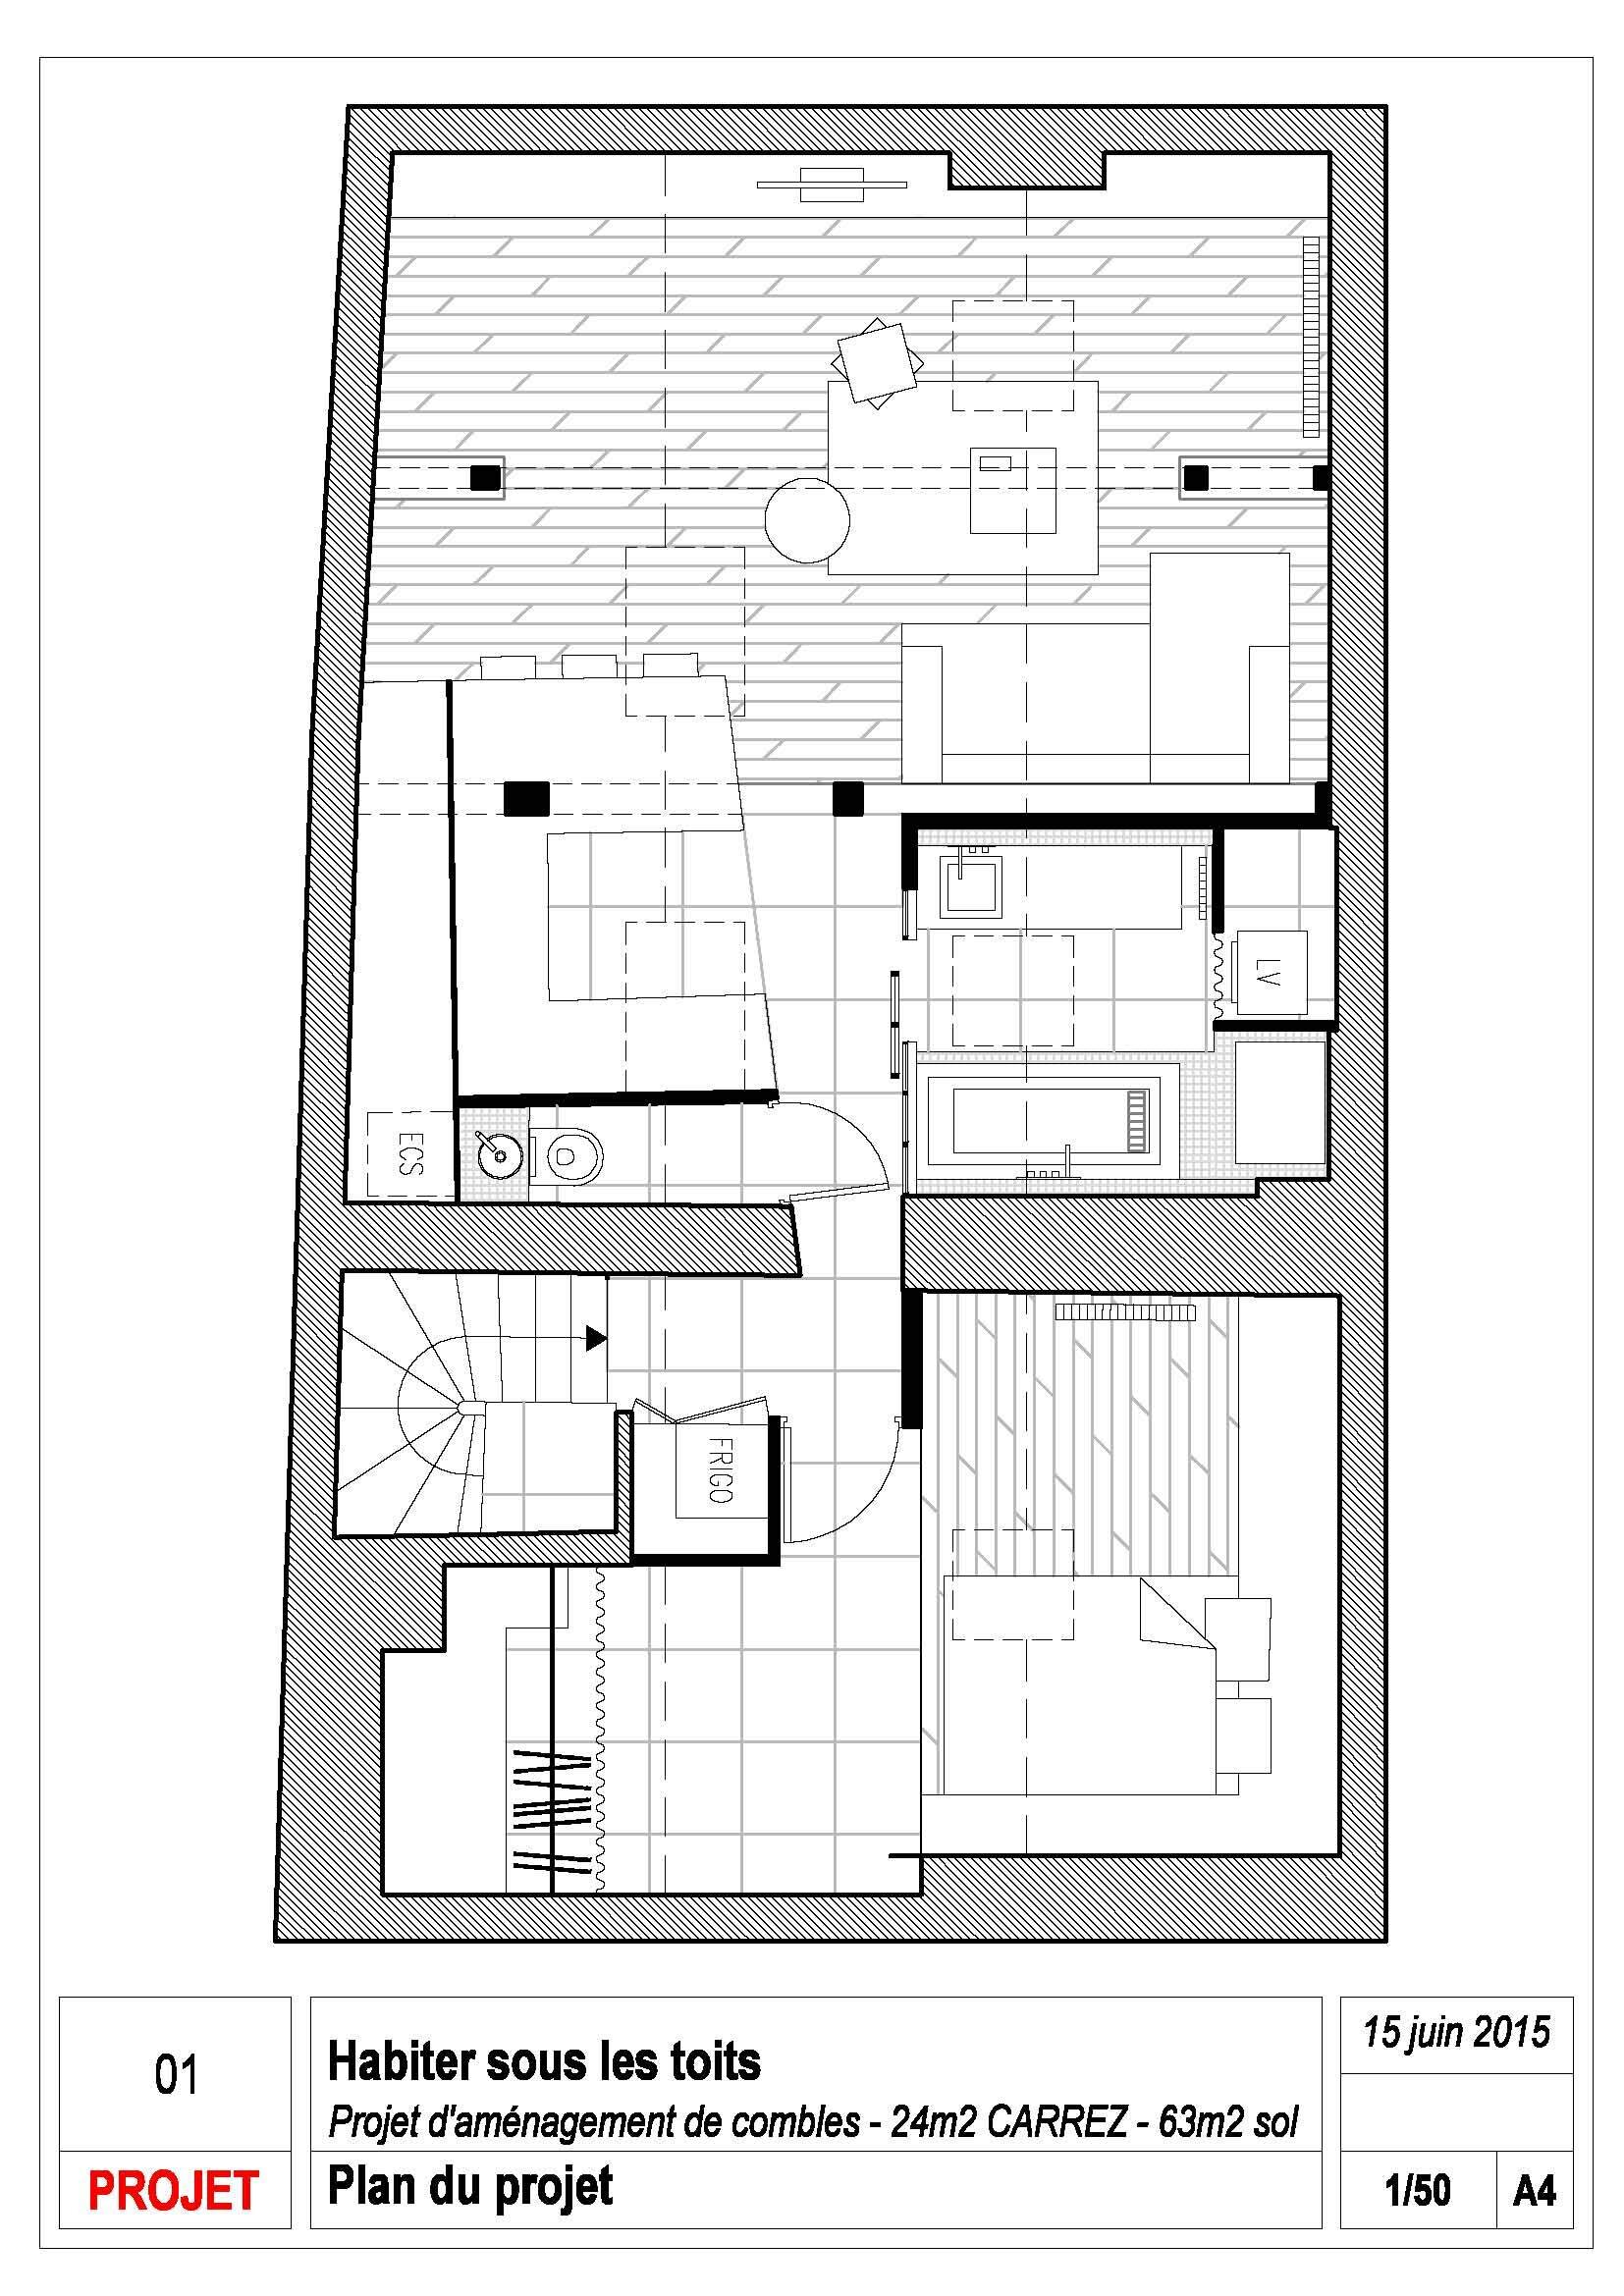 Living Under the Roof - Prisca Pellerin - France - Floor Plan - Humble Homes